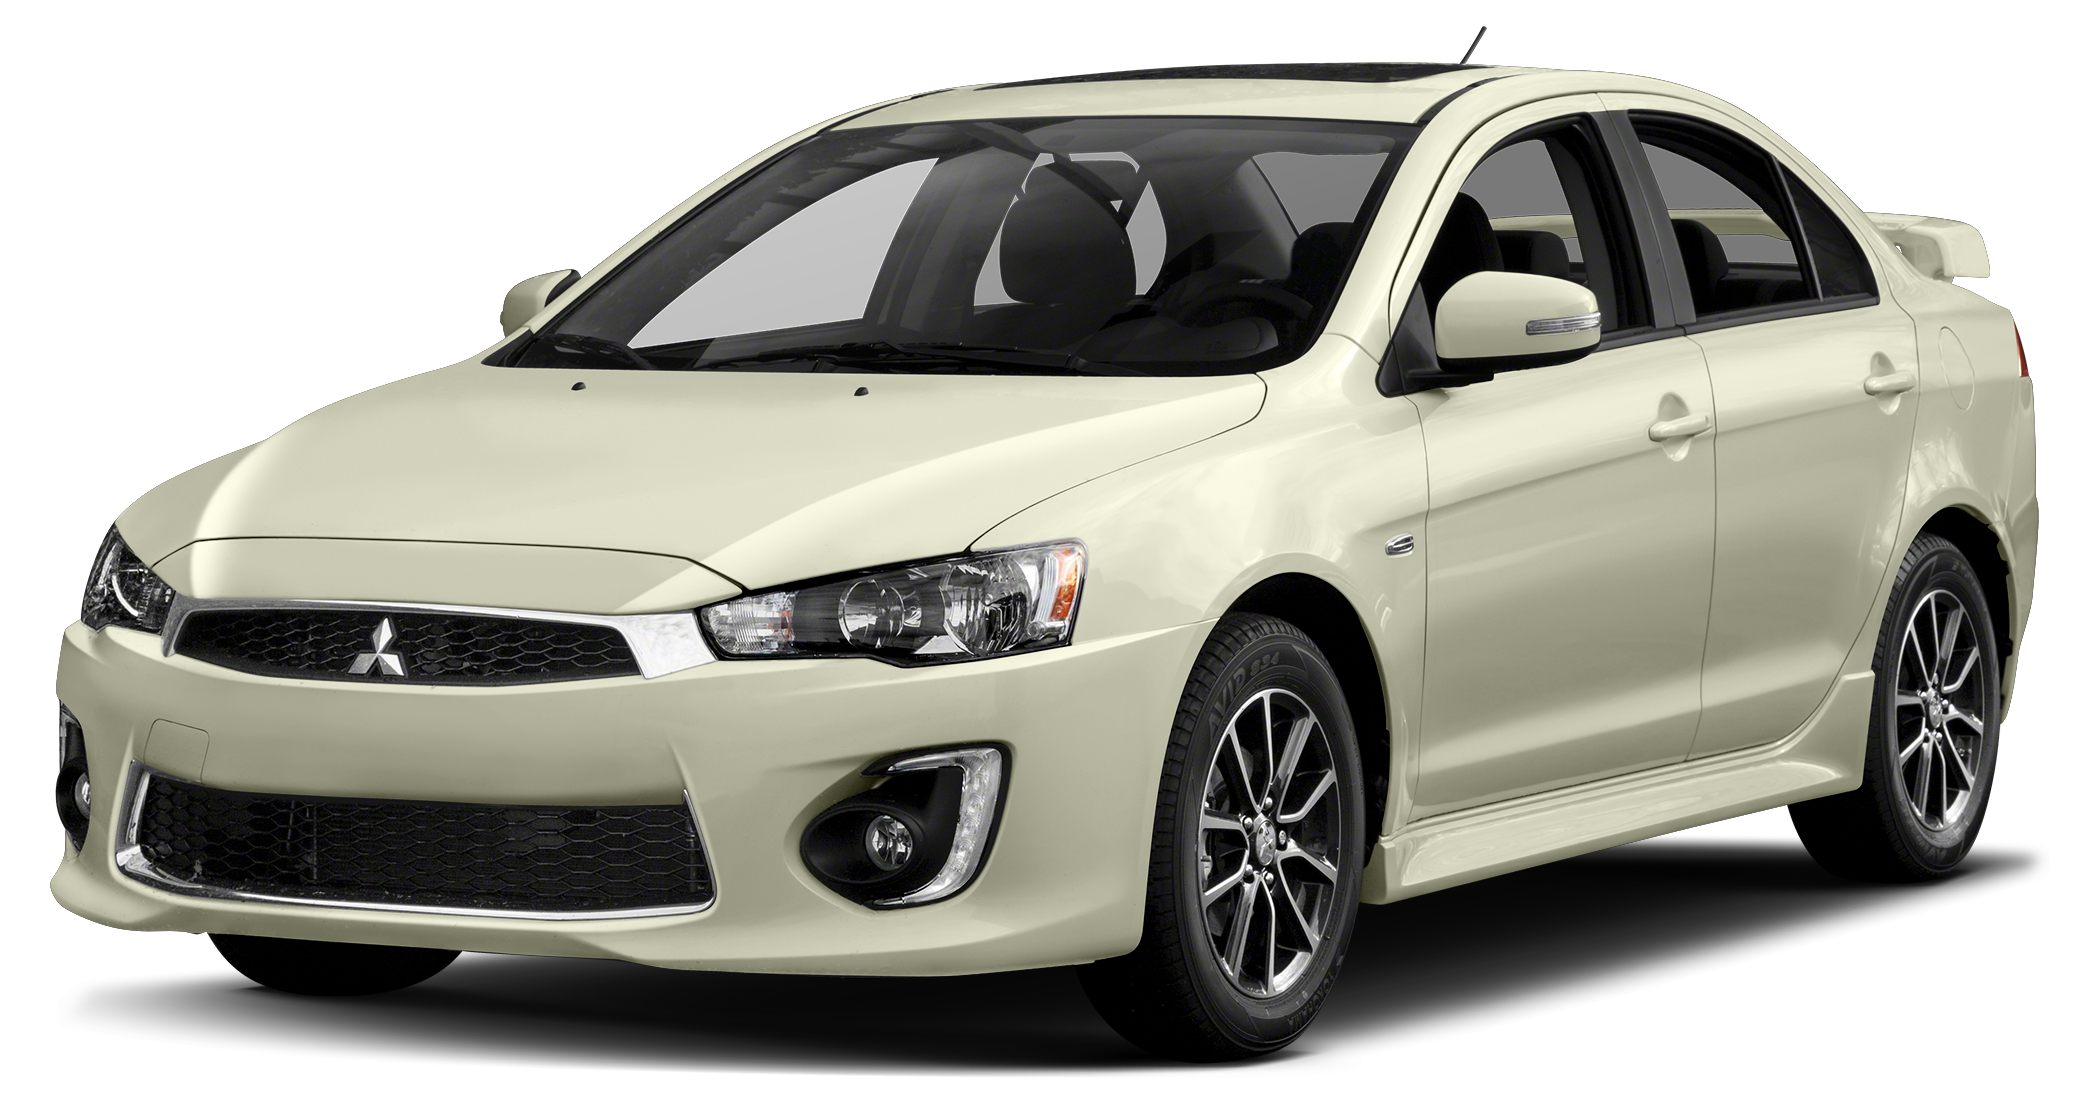 2016 Mitsubishi Lancer ES WE SELL OUR VEHICLES AT WHOLESALE PRICES AND STAND BEHIND OUR CARS